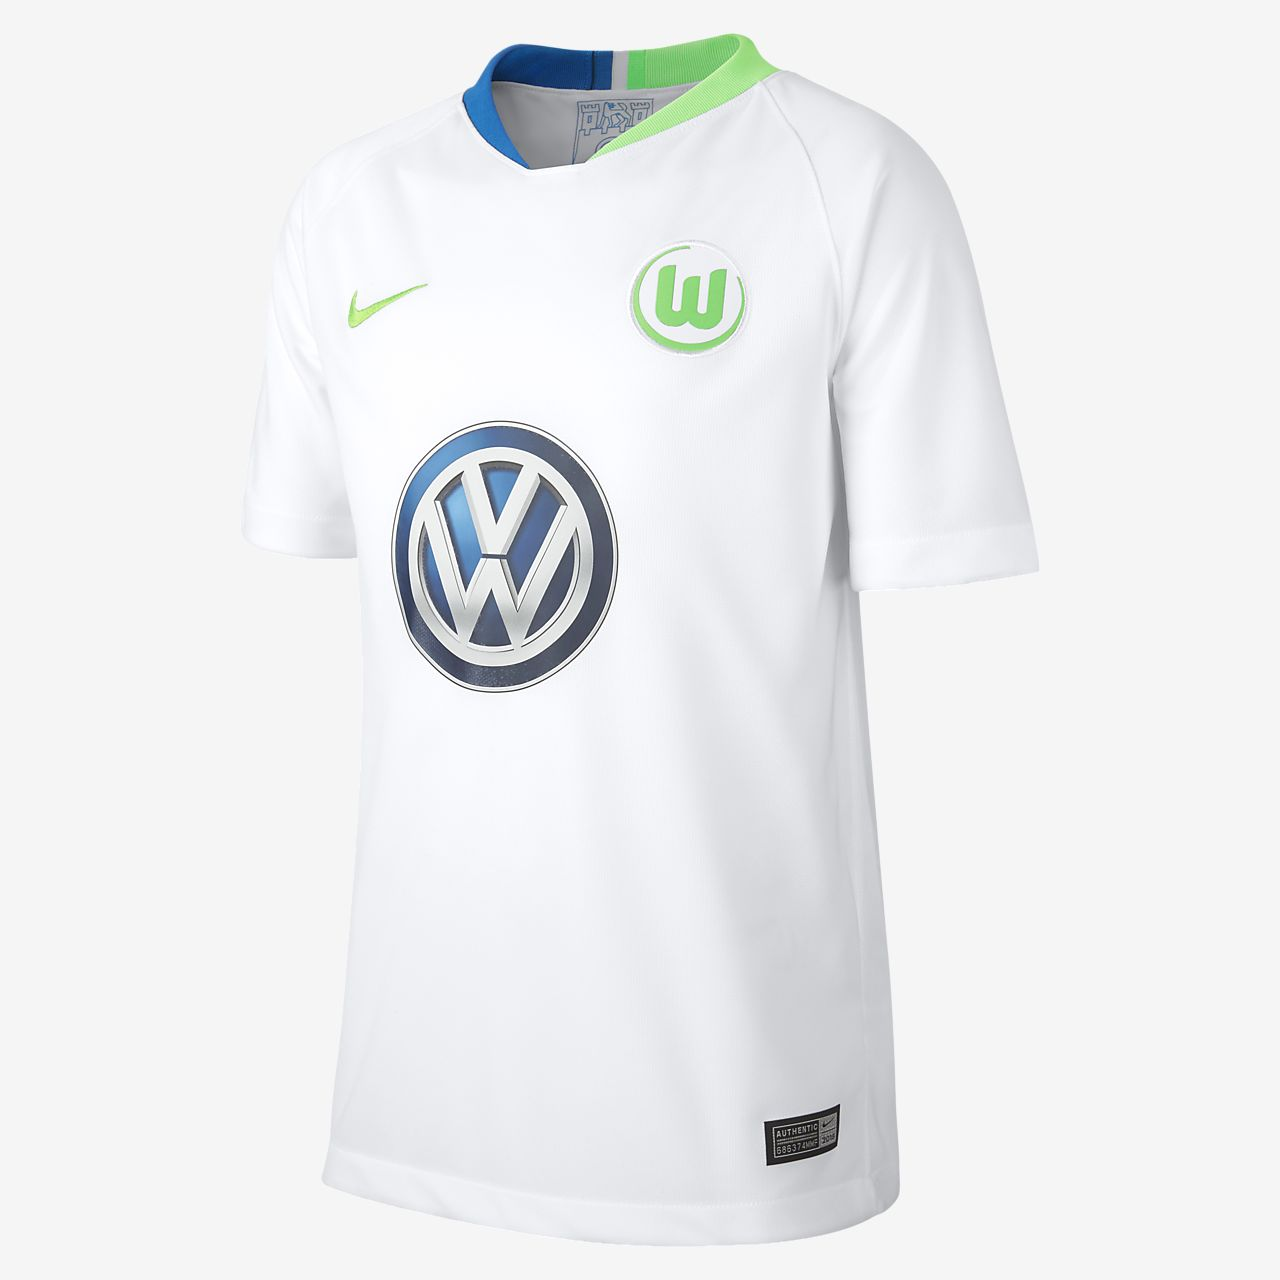 63dc87e5efd2 2018 19 VfL Wolfsburg Stadium Away Older Kids  Football Shirt. Nike ...